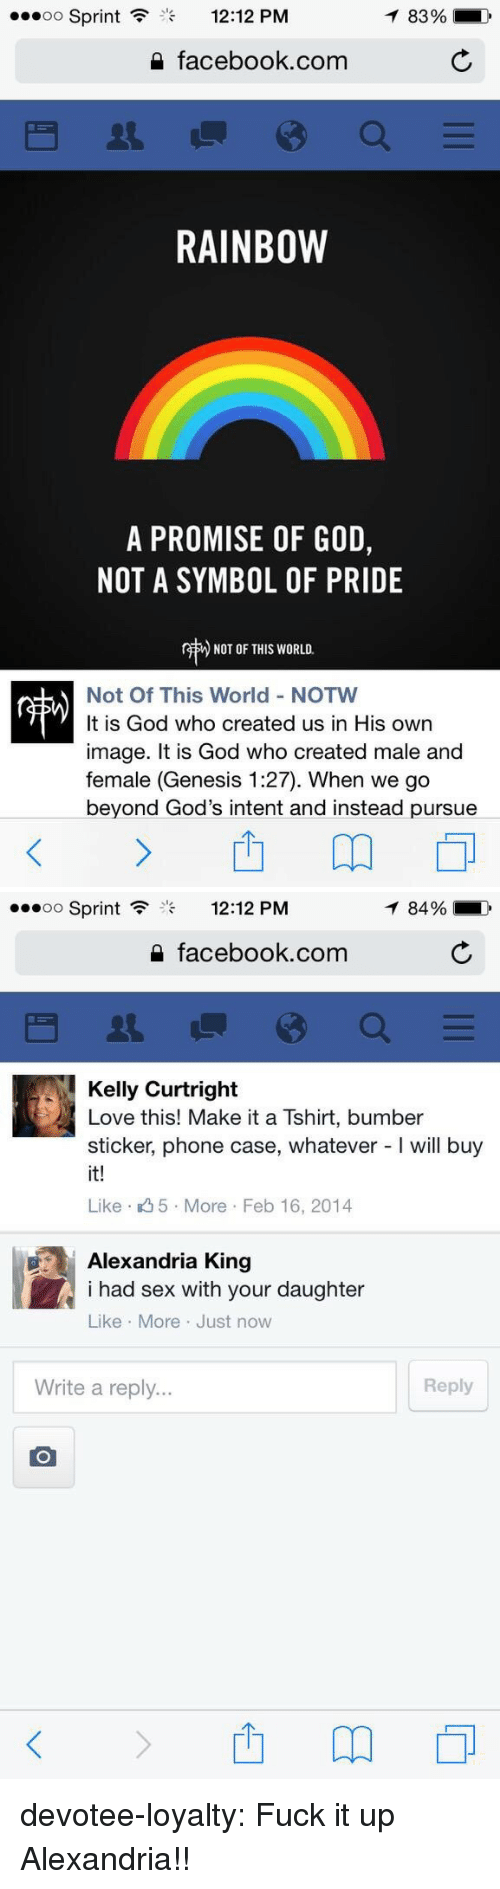 phone case: Sprint  12:12 PM  83%  2 facebook.com  RAINBOW  A PROMISE OF GOD,  NOT A SYMBOL OF PRIDE  r  ) NOT OF THIS WORLD.  Not Of This World - NOTW  It is God who created us in His own  image. It is God who created male and  female (Genesis 1:27). When we go  beyond God's intent and instead pursue   oo Sprint  12:12 PM  84%  2 facebook.com  Kelly Curtright  Love this! Make it a Tshirt, bumber  sticker, phone case, whatever - will buy  it!  Like 5 More Feb 16, 2014  Alexandria King  i had sex with your daughter  Like More Just now  Write a reply...  Reply devotee-loyalty: Fuck it up Alexandria!!